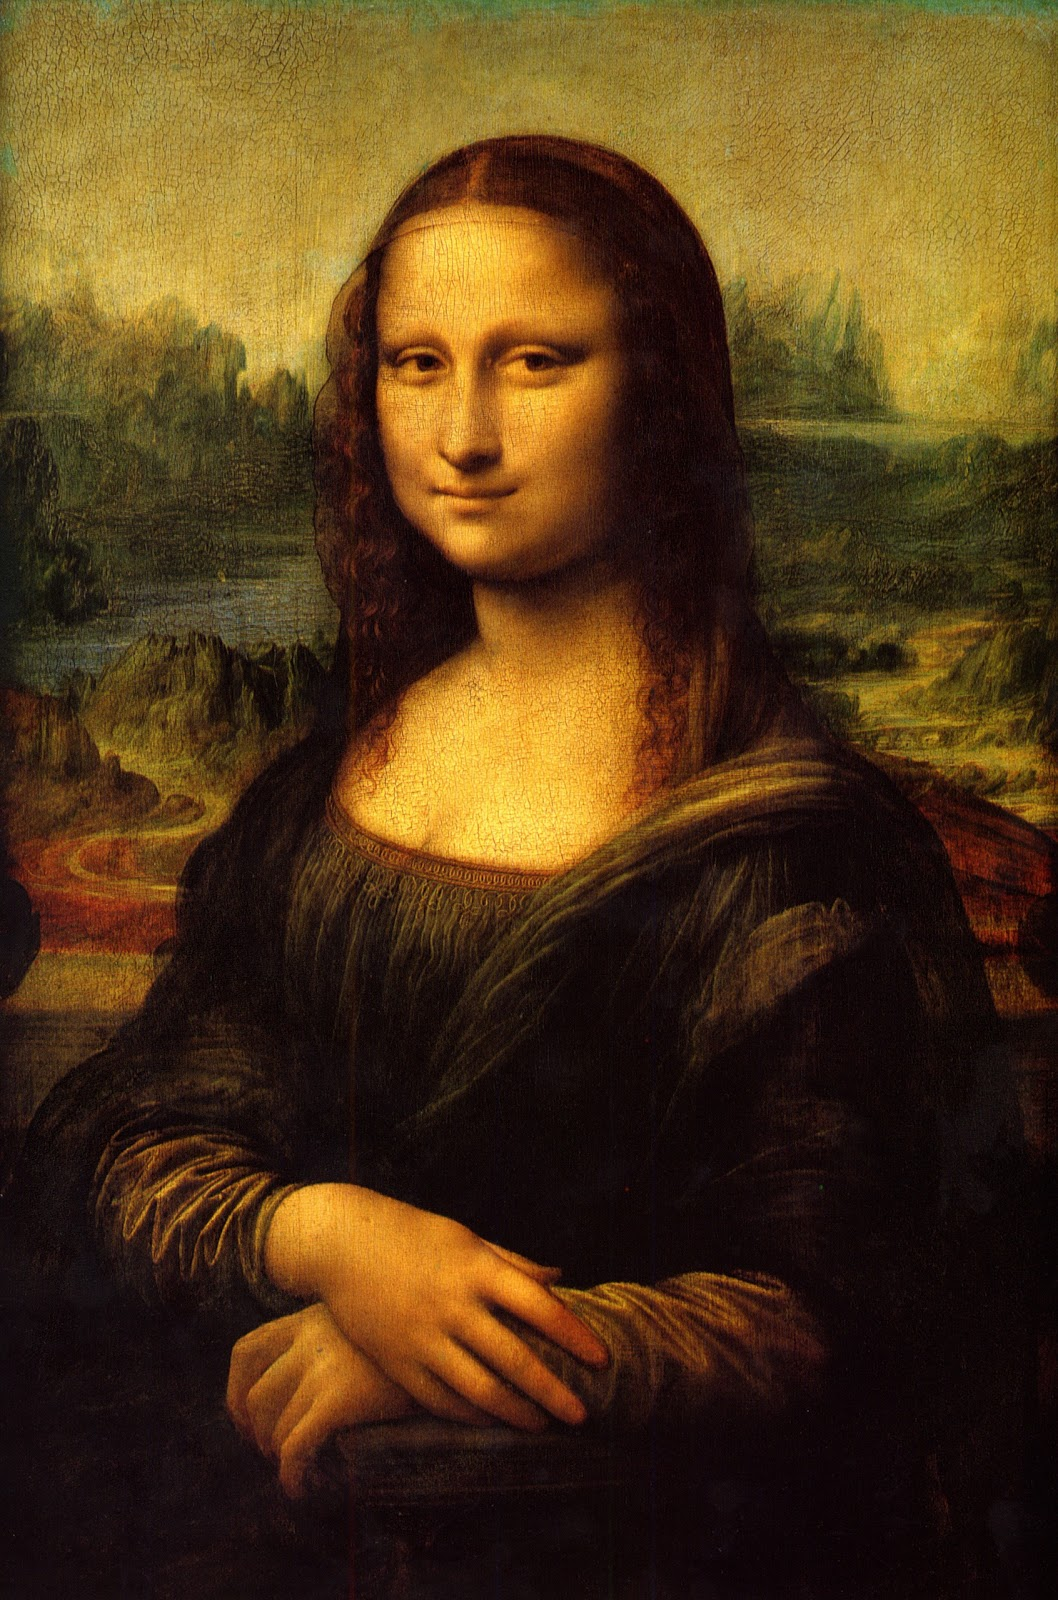 ART Painting: World's Top 5 Most Famous Paintings